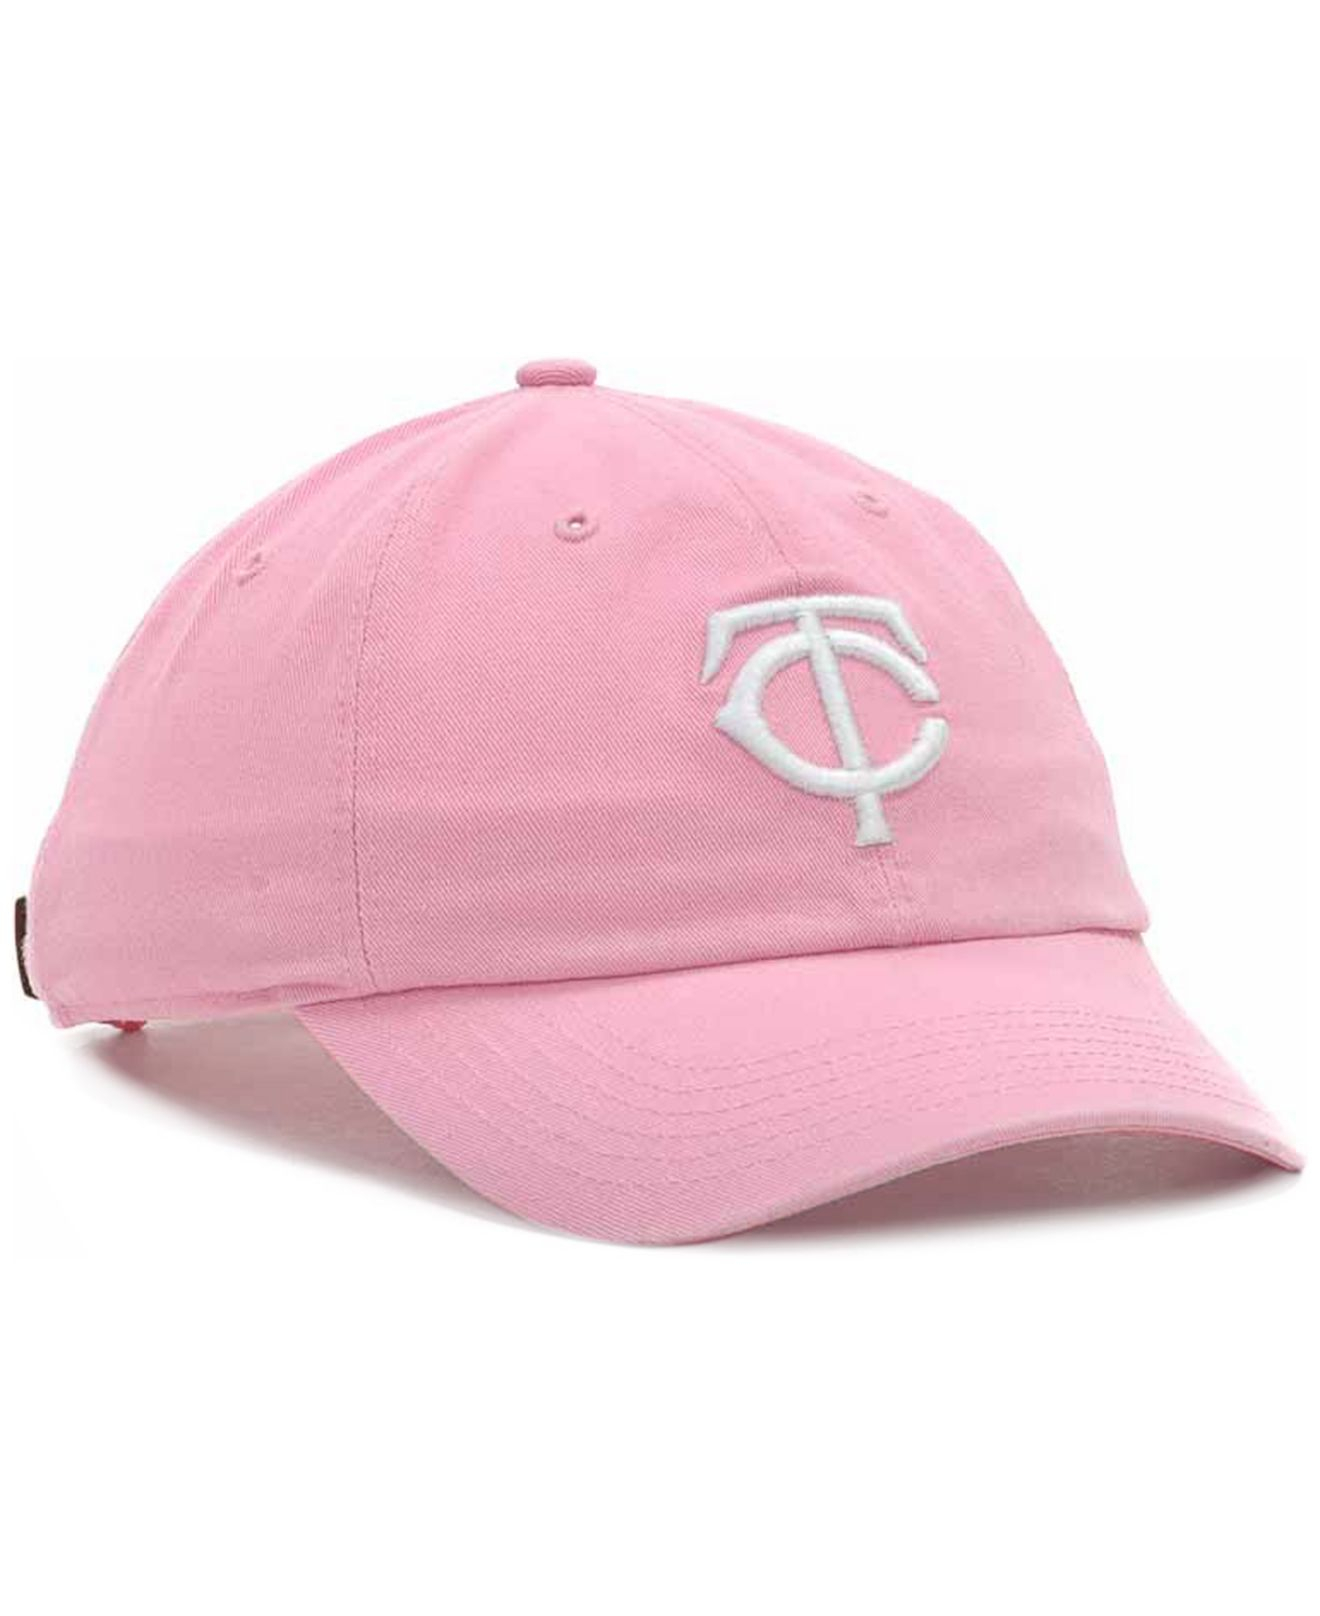 in stock 1749a c1f43 ... hot lyst 47 brand minnesota twins clean up hat in pink for men 6efd2  a6af8